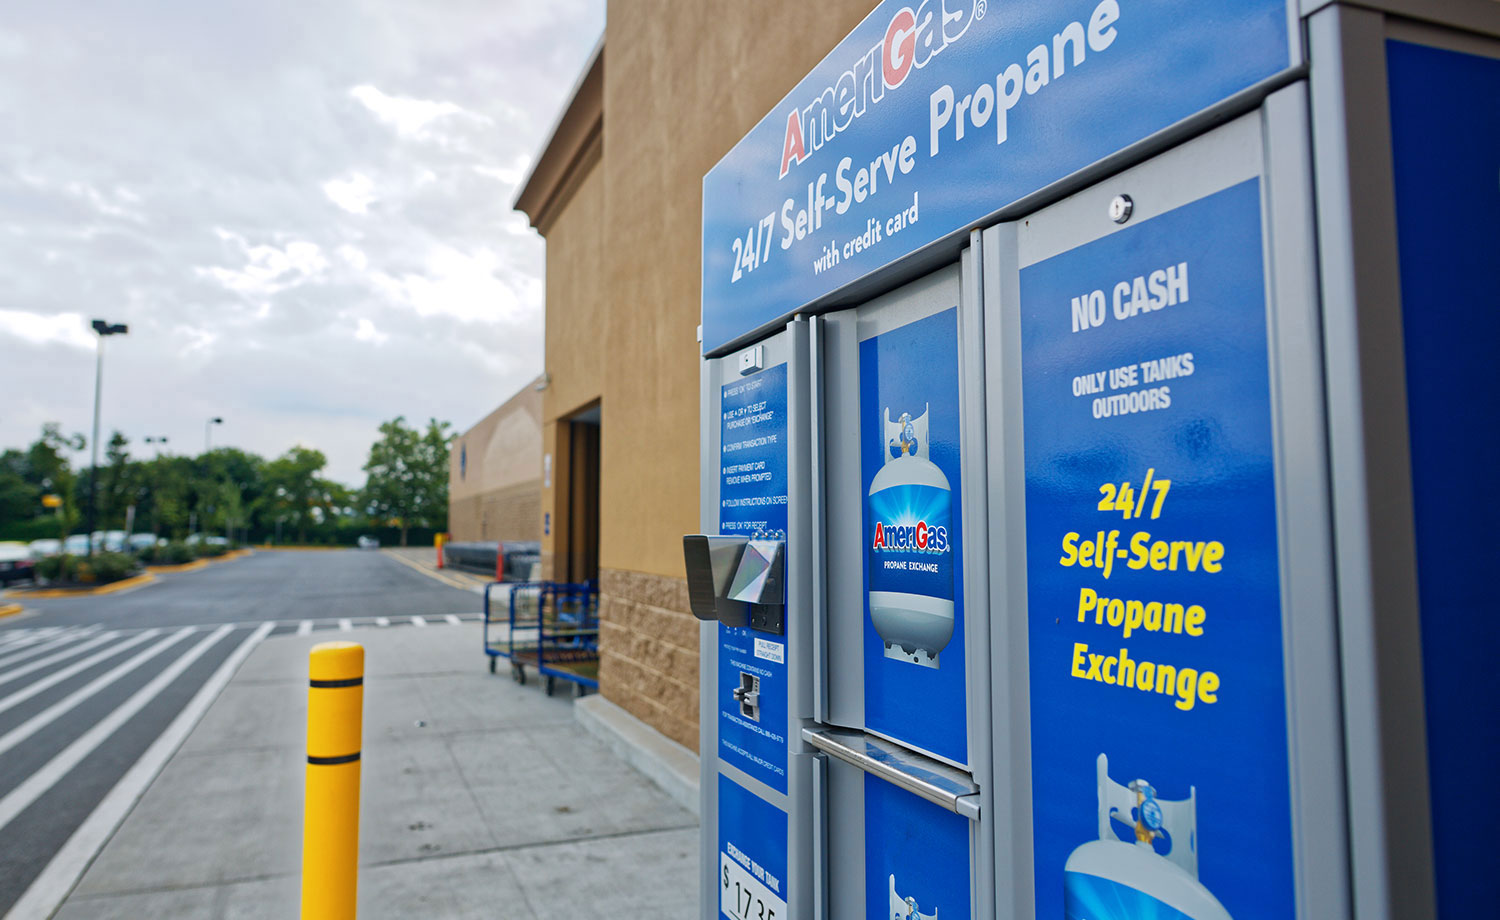 Self-Serve propane tank exchange.